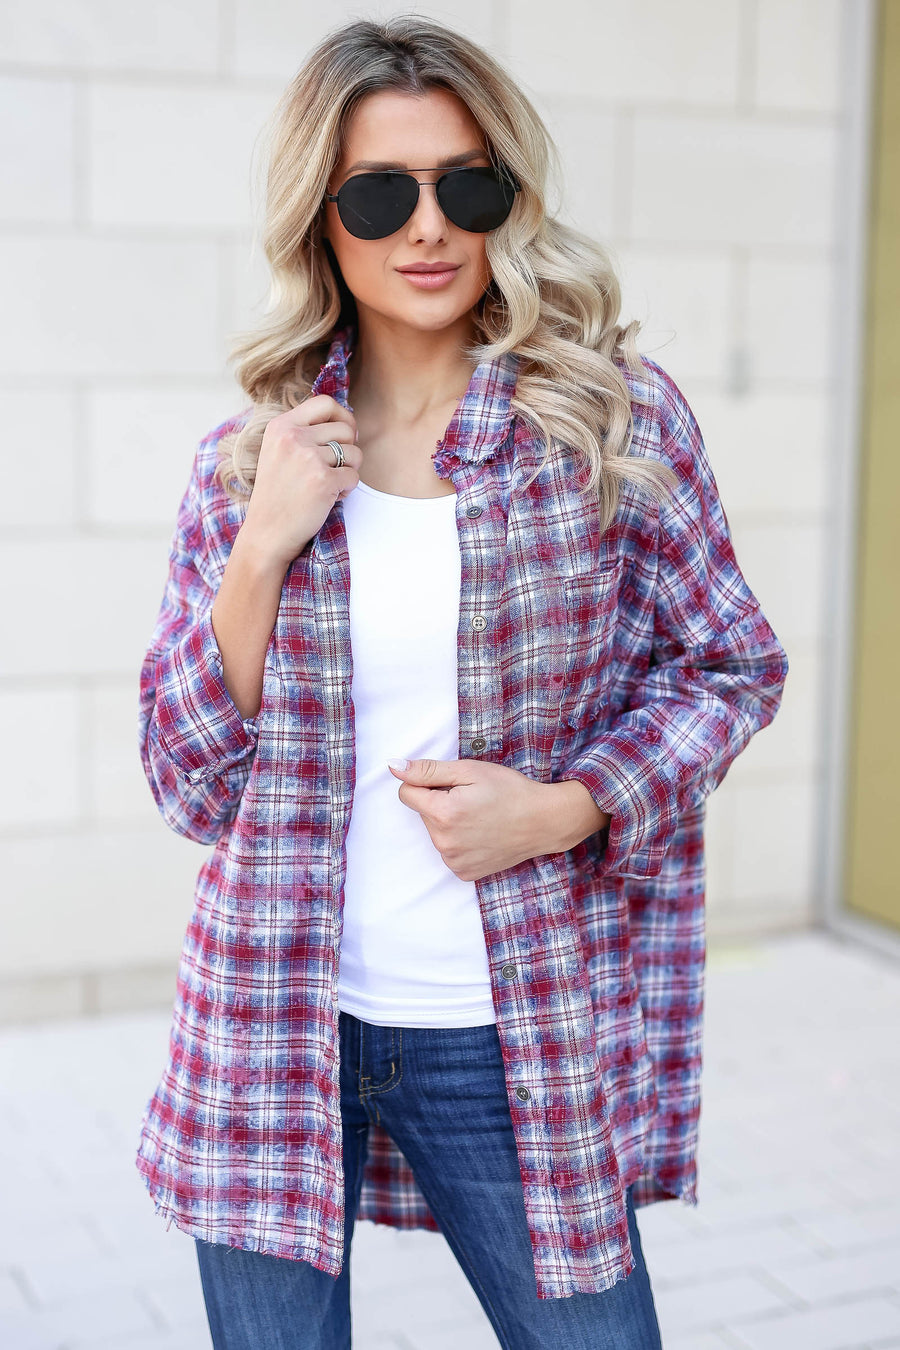 Low Key Distressed Plaid Shirt - Wine closet candy women's trendy flannel button up top 1